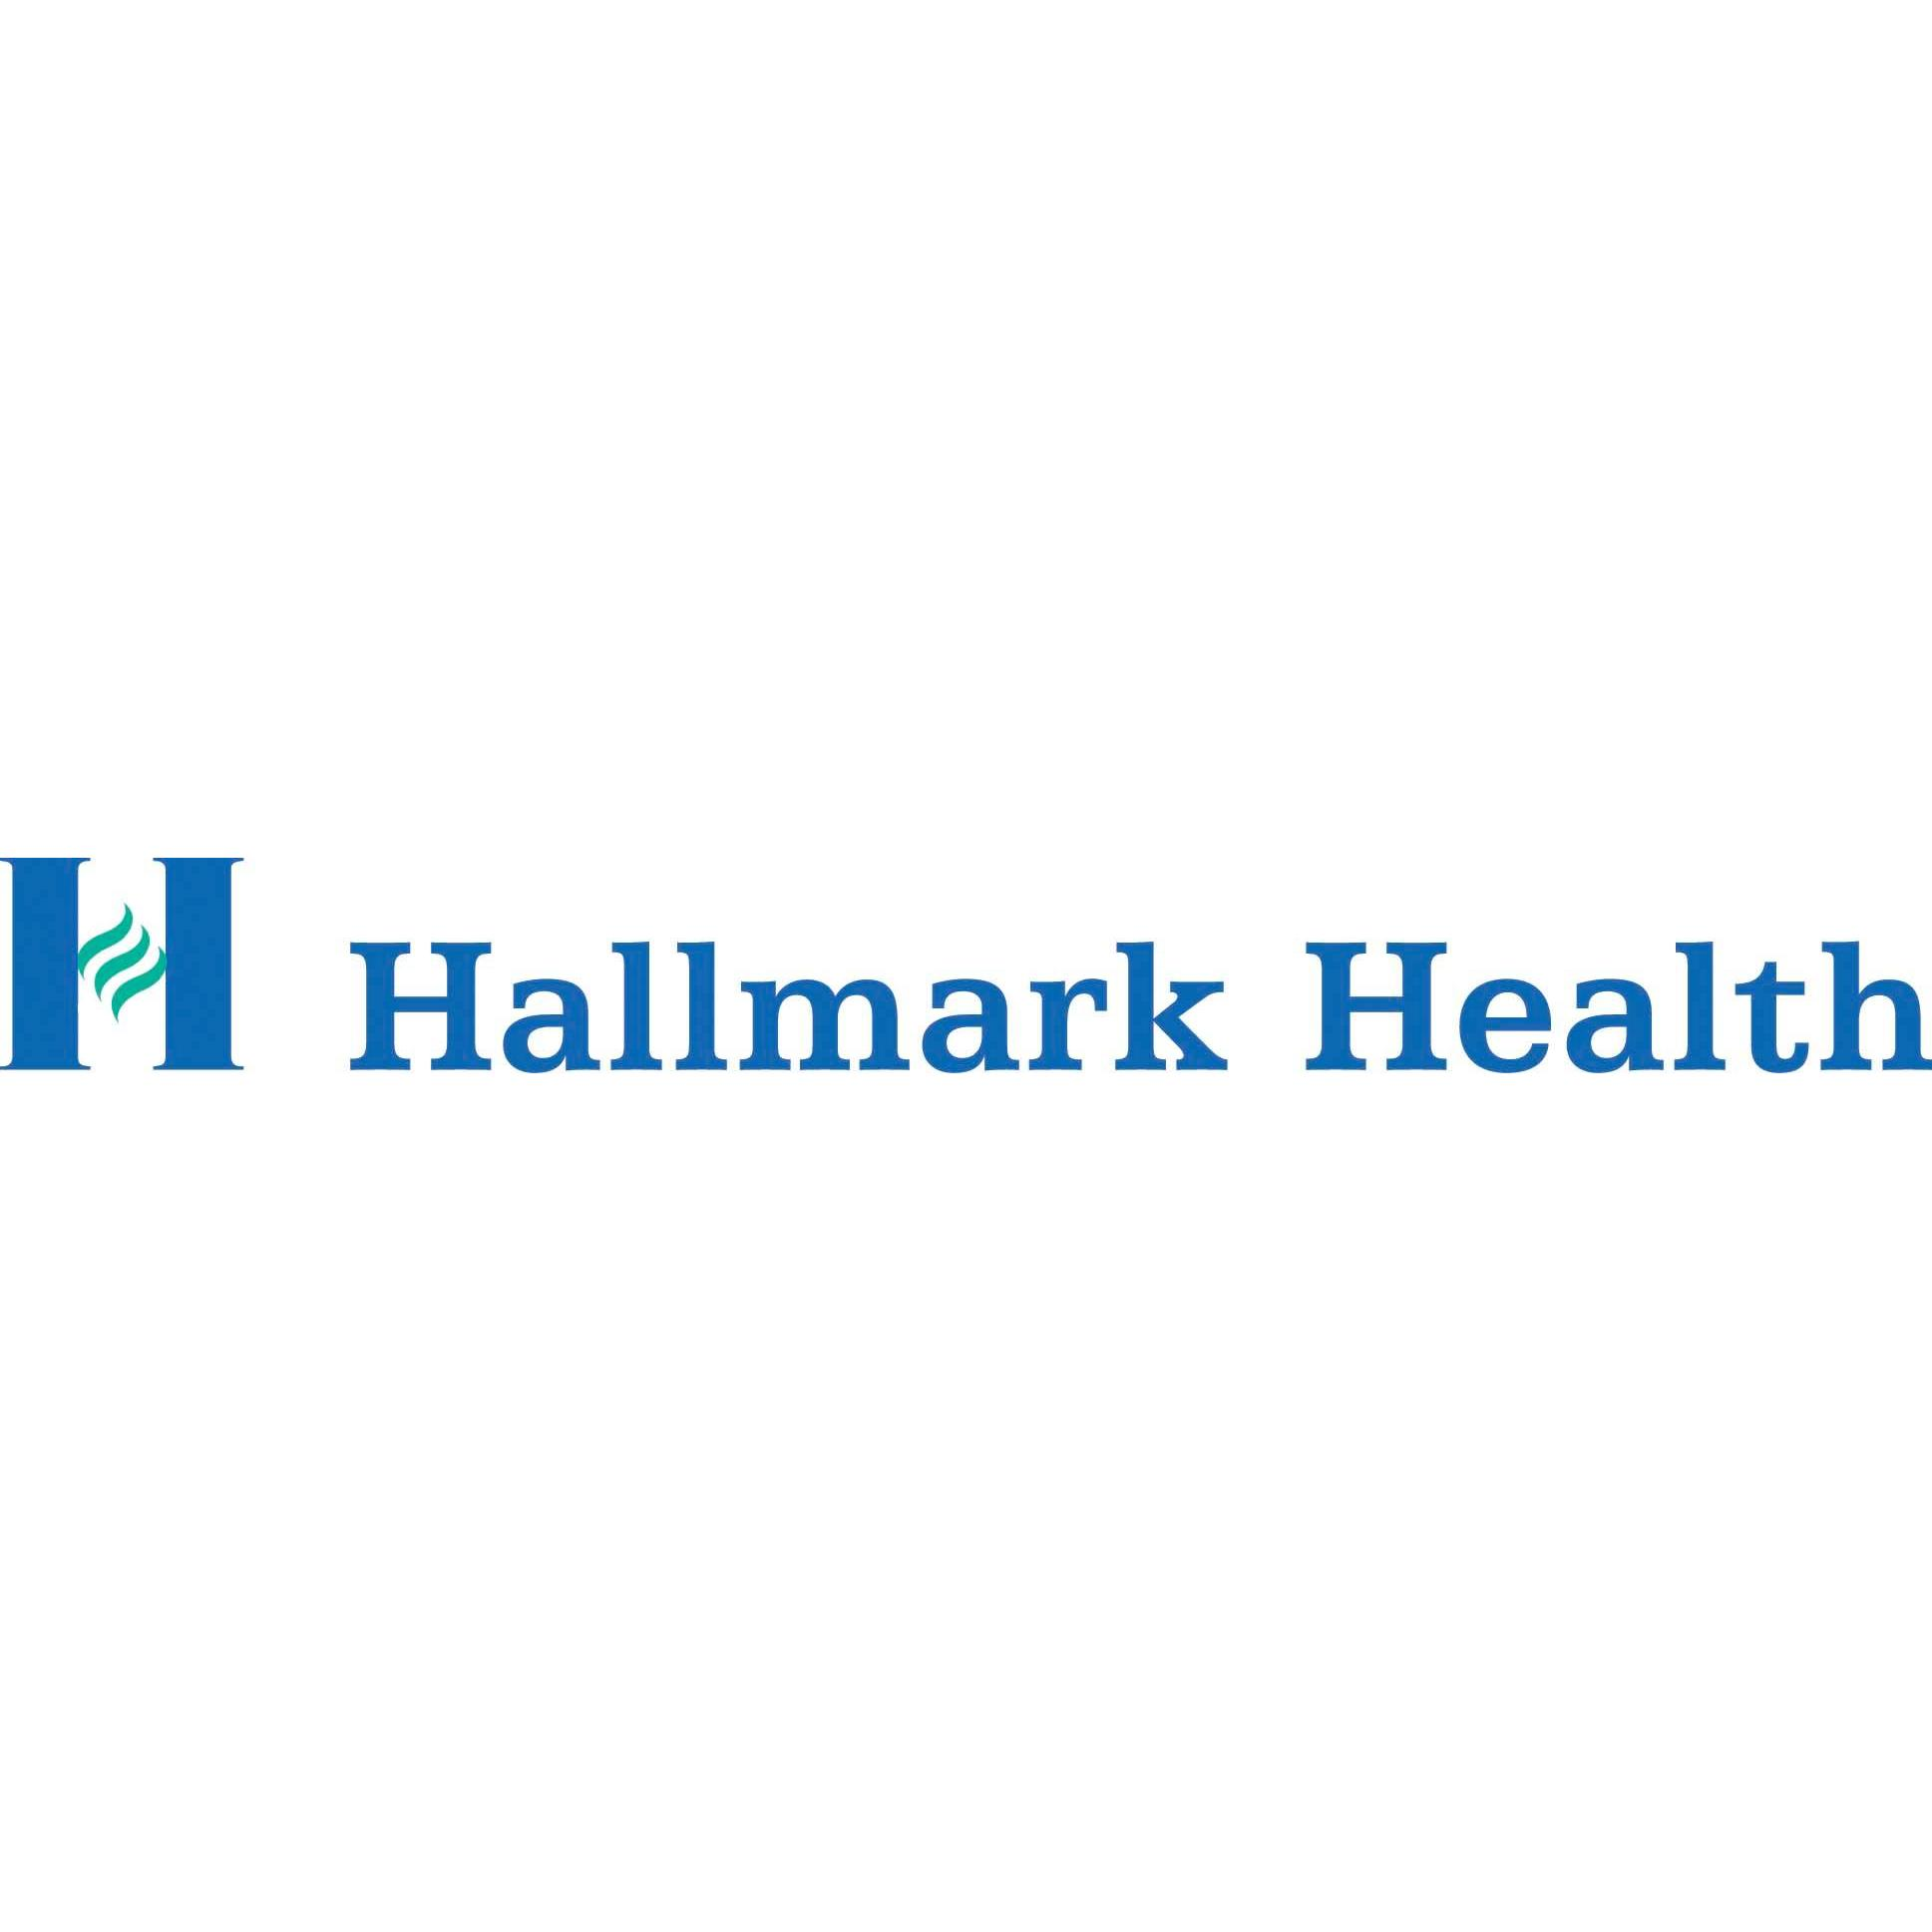 Hallmark Health Breast Health Center Stoneham